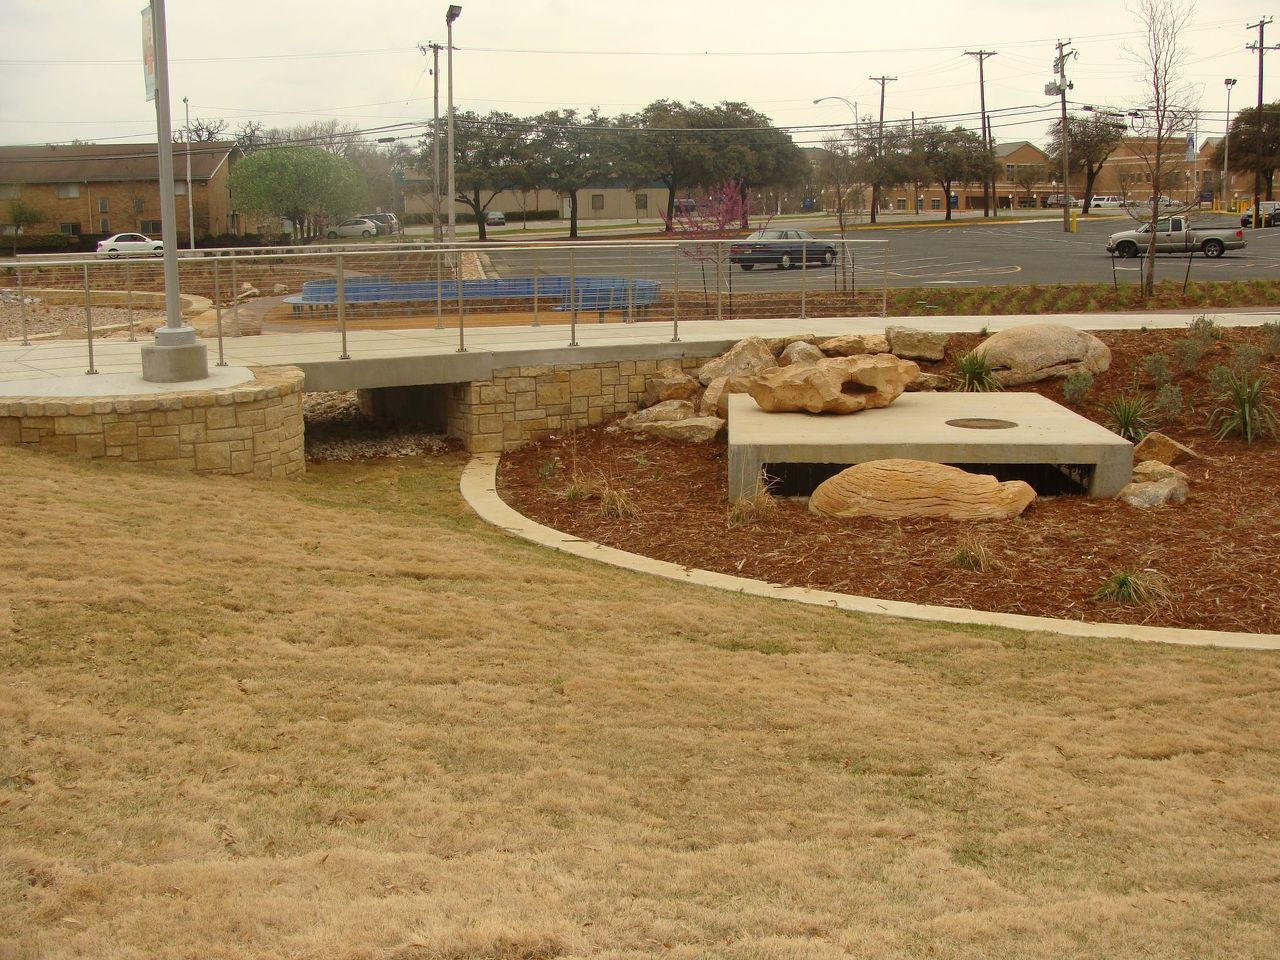 Jakan engineering consulting sevices arlington texas for Detention pond design hec hms